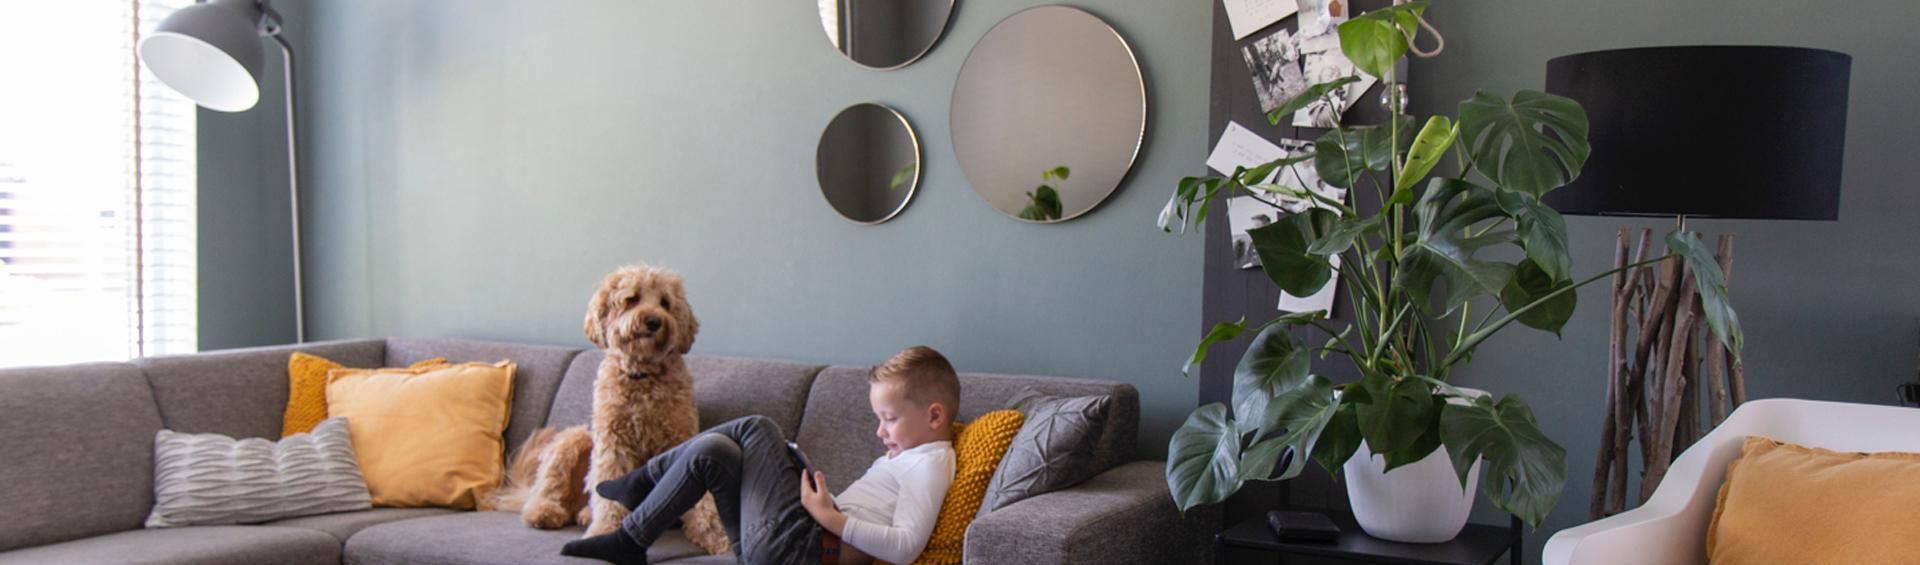 3 round mirrors in home interior